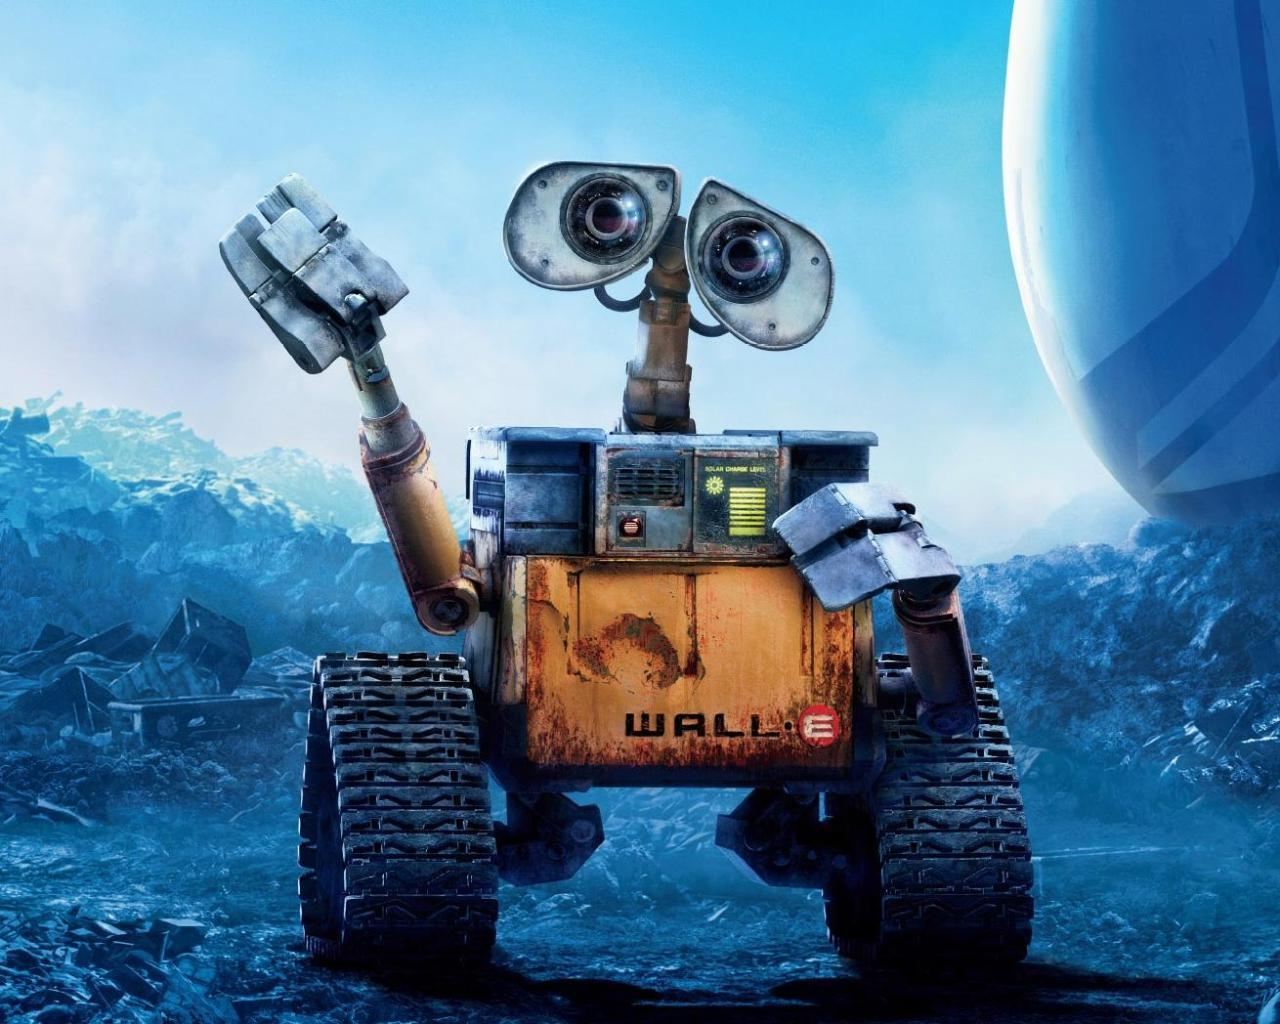 Wall*E Wallpaper